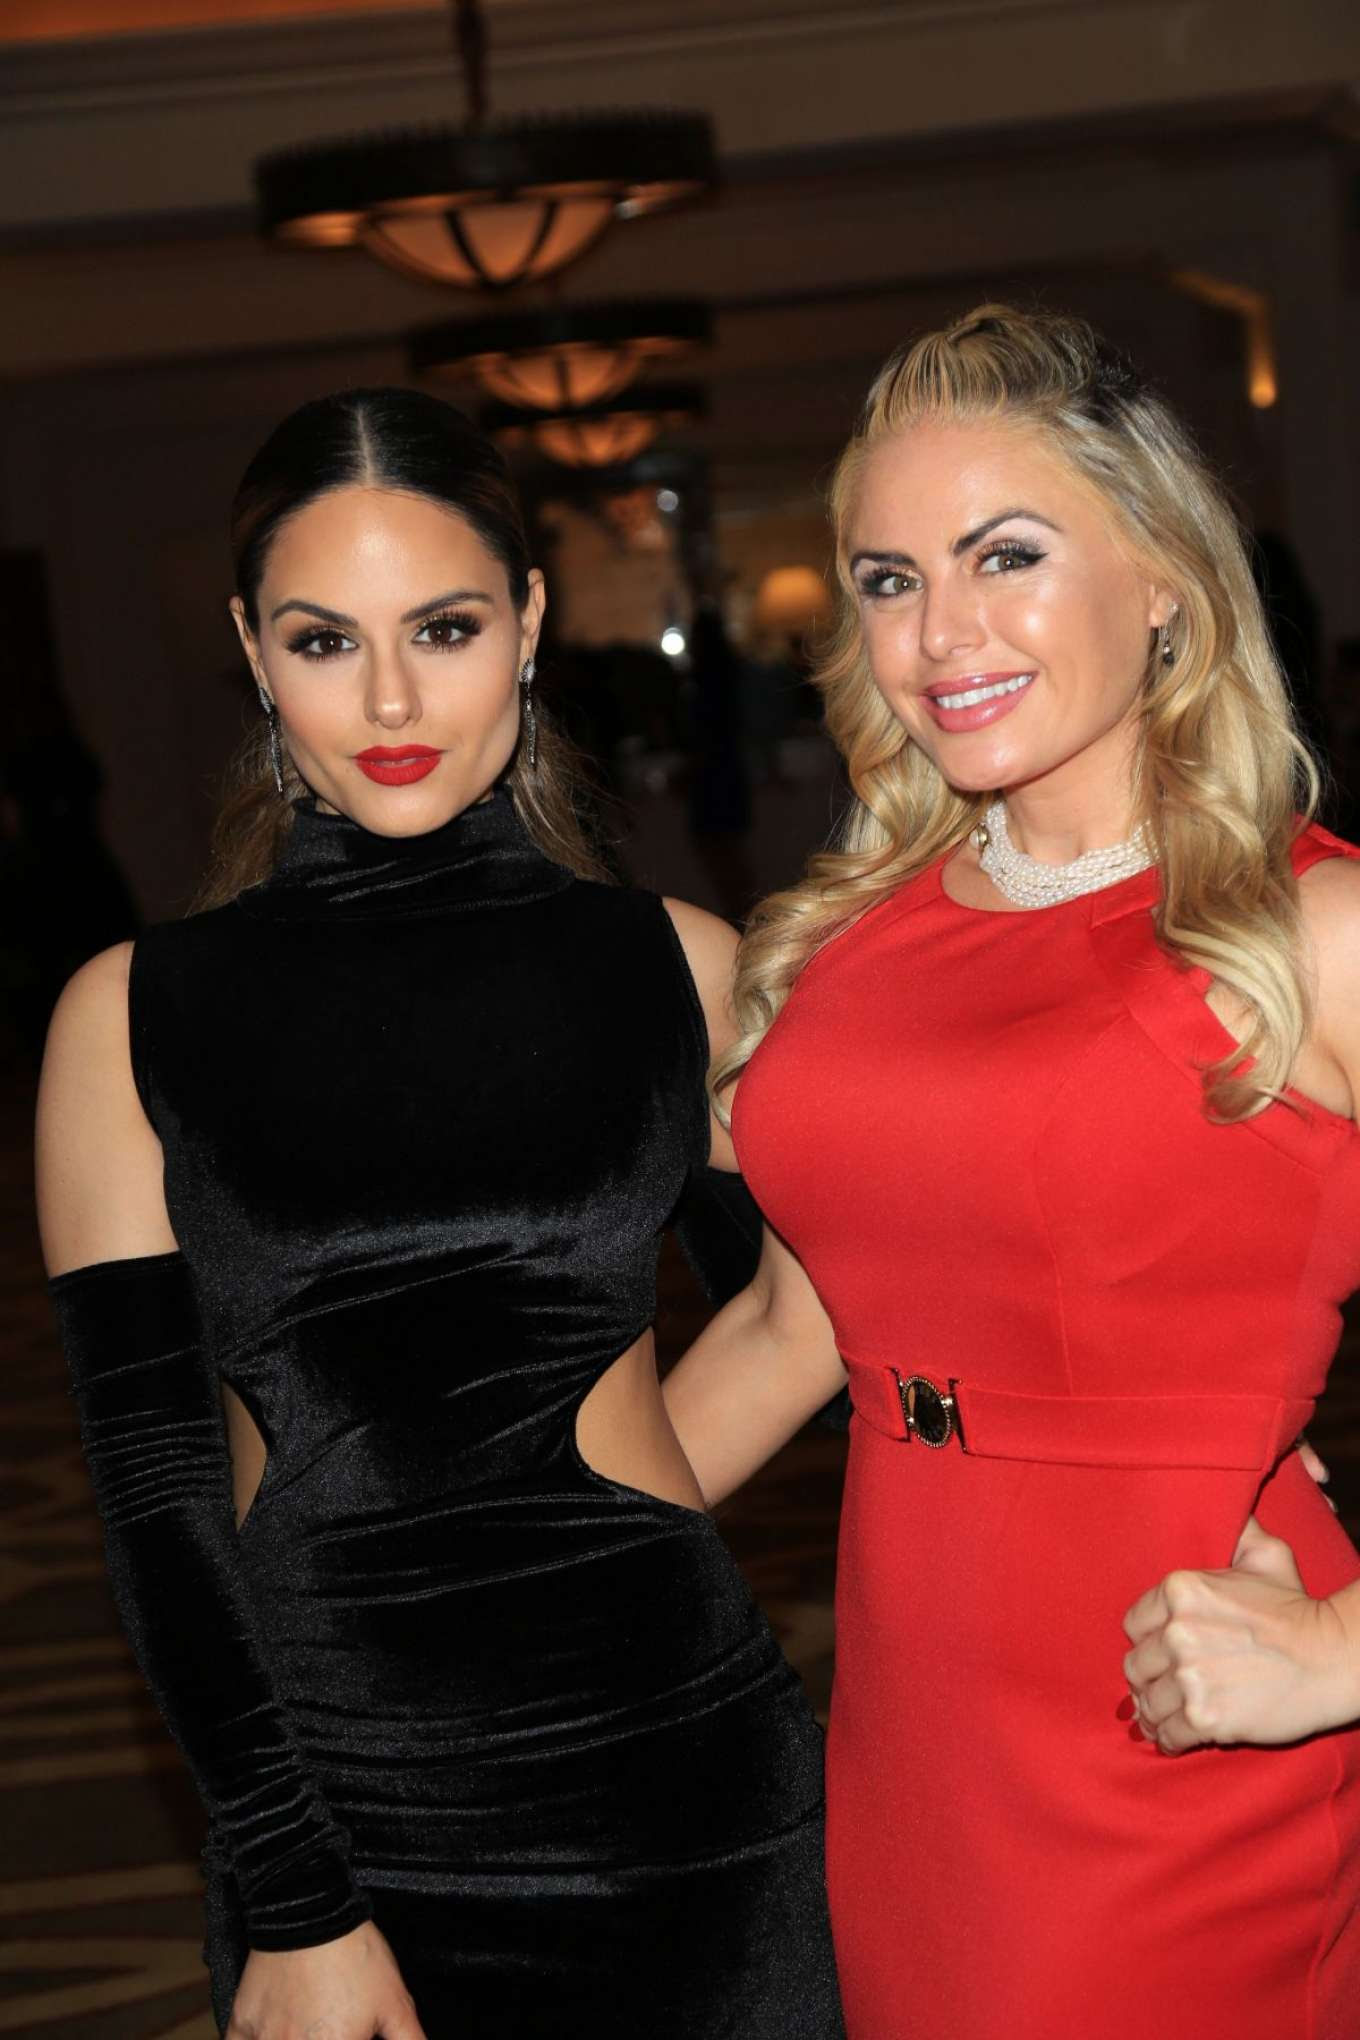 Pia Toscano and Tia Barr at Montage Hotel in Beverly Hills